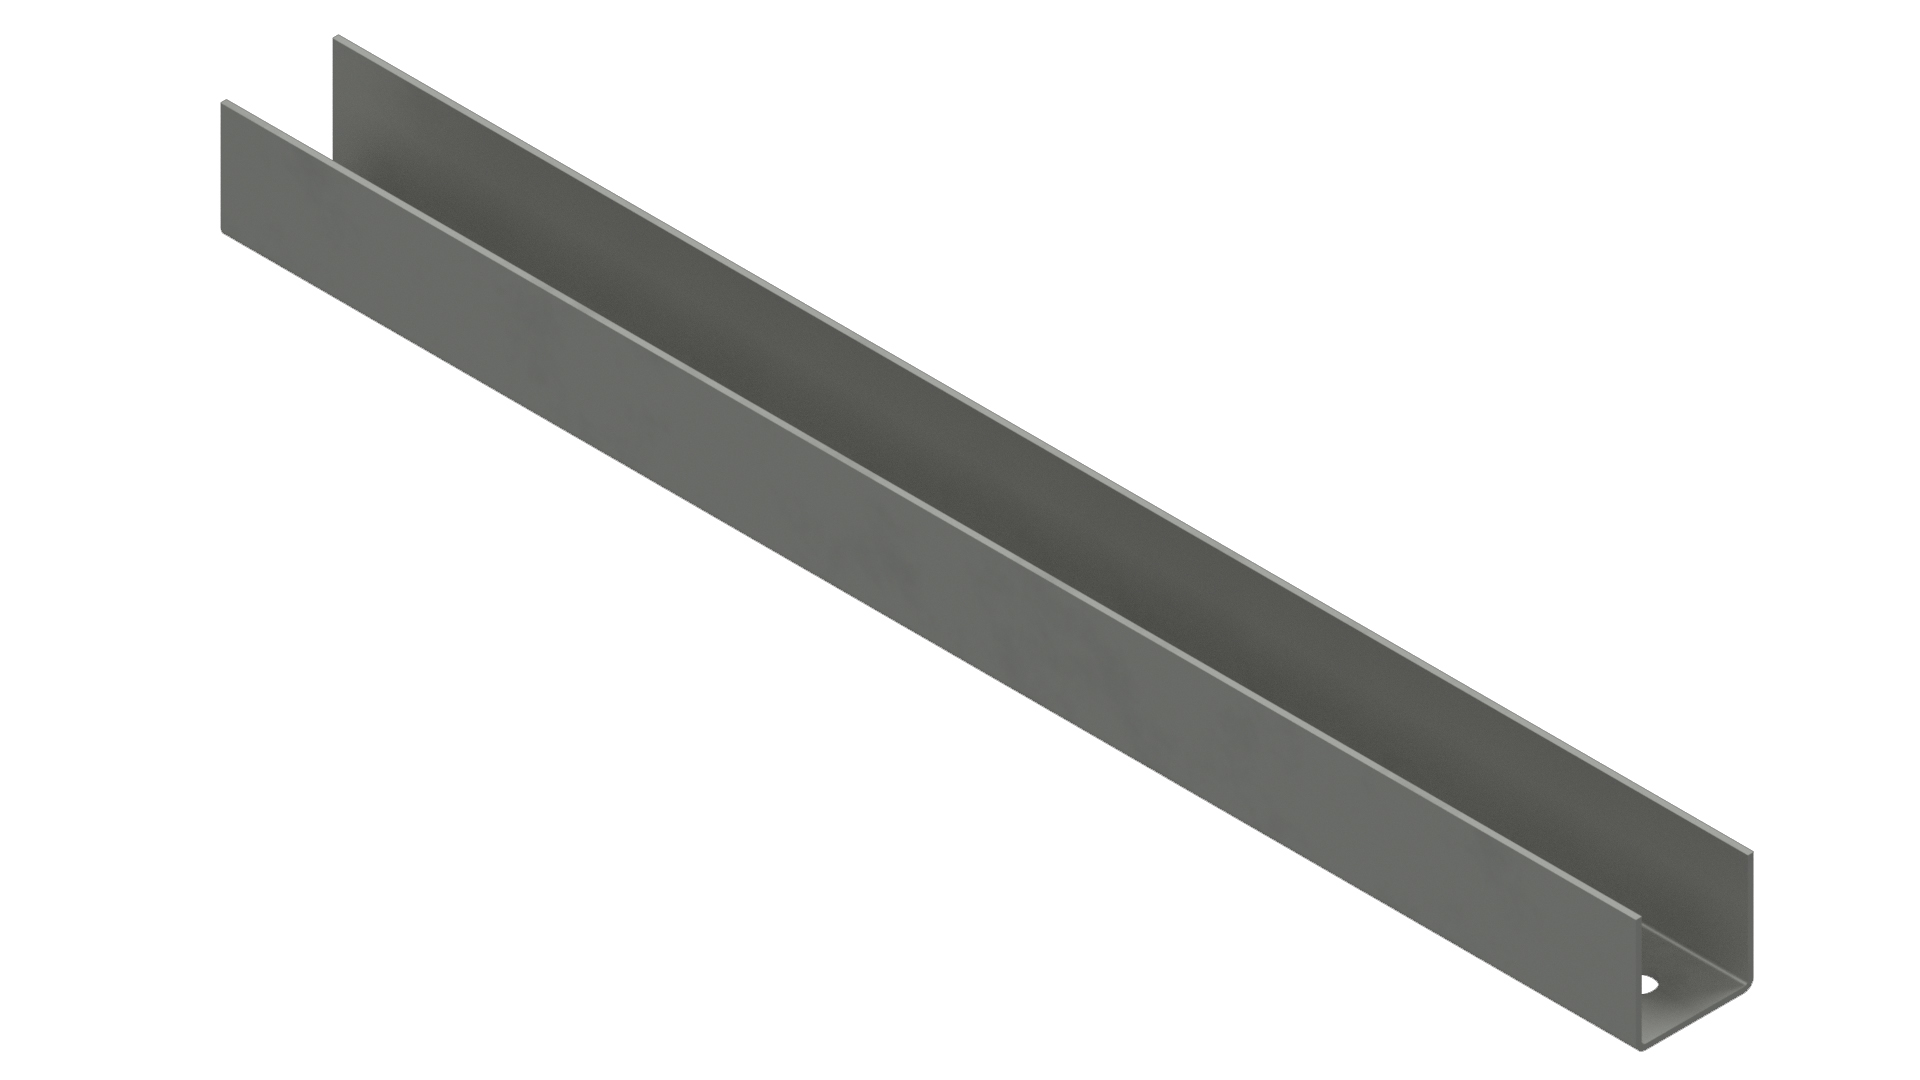 Channel Cable Tray - Aluminum Perforated Angle Tubing Tray